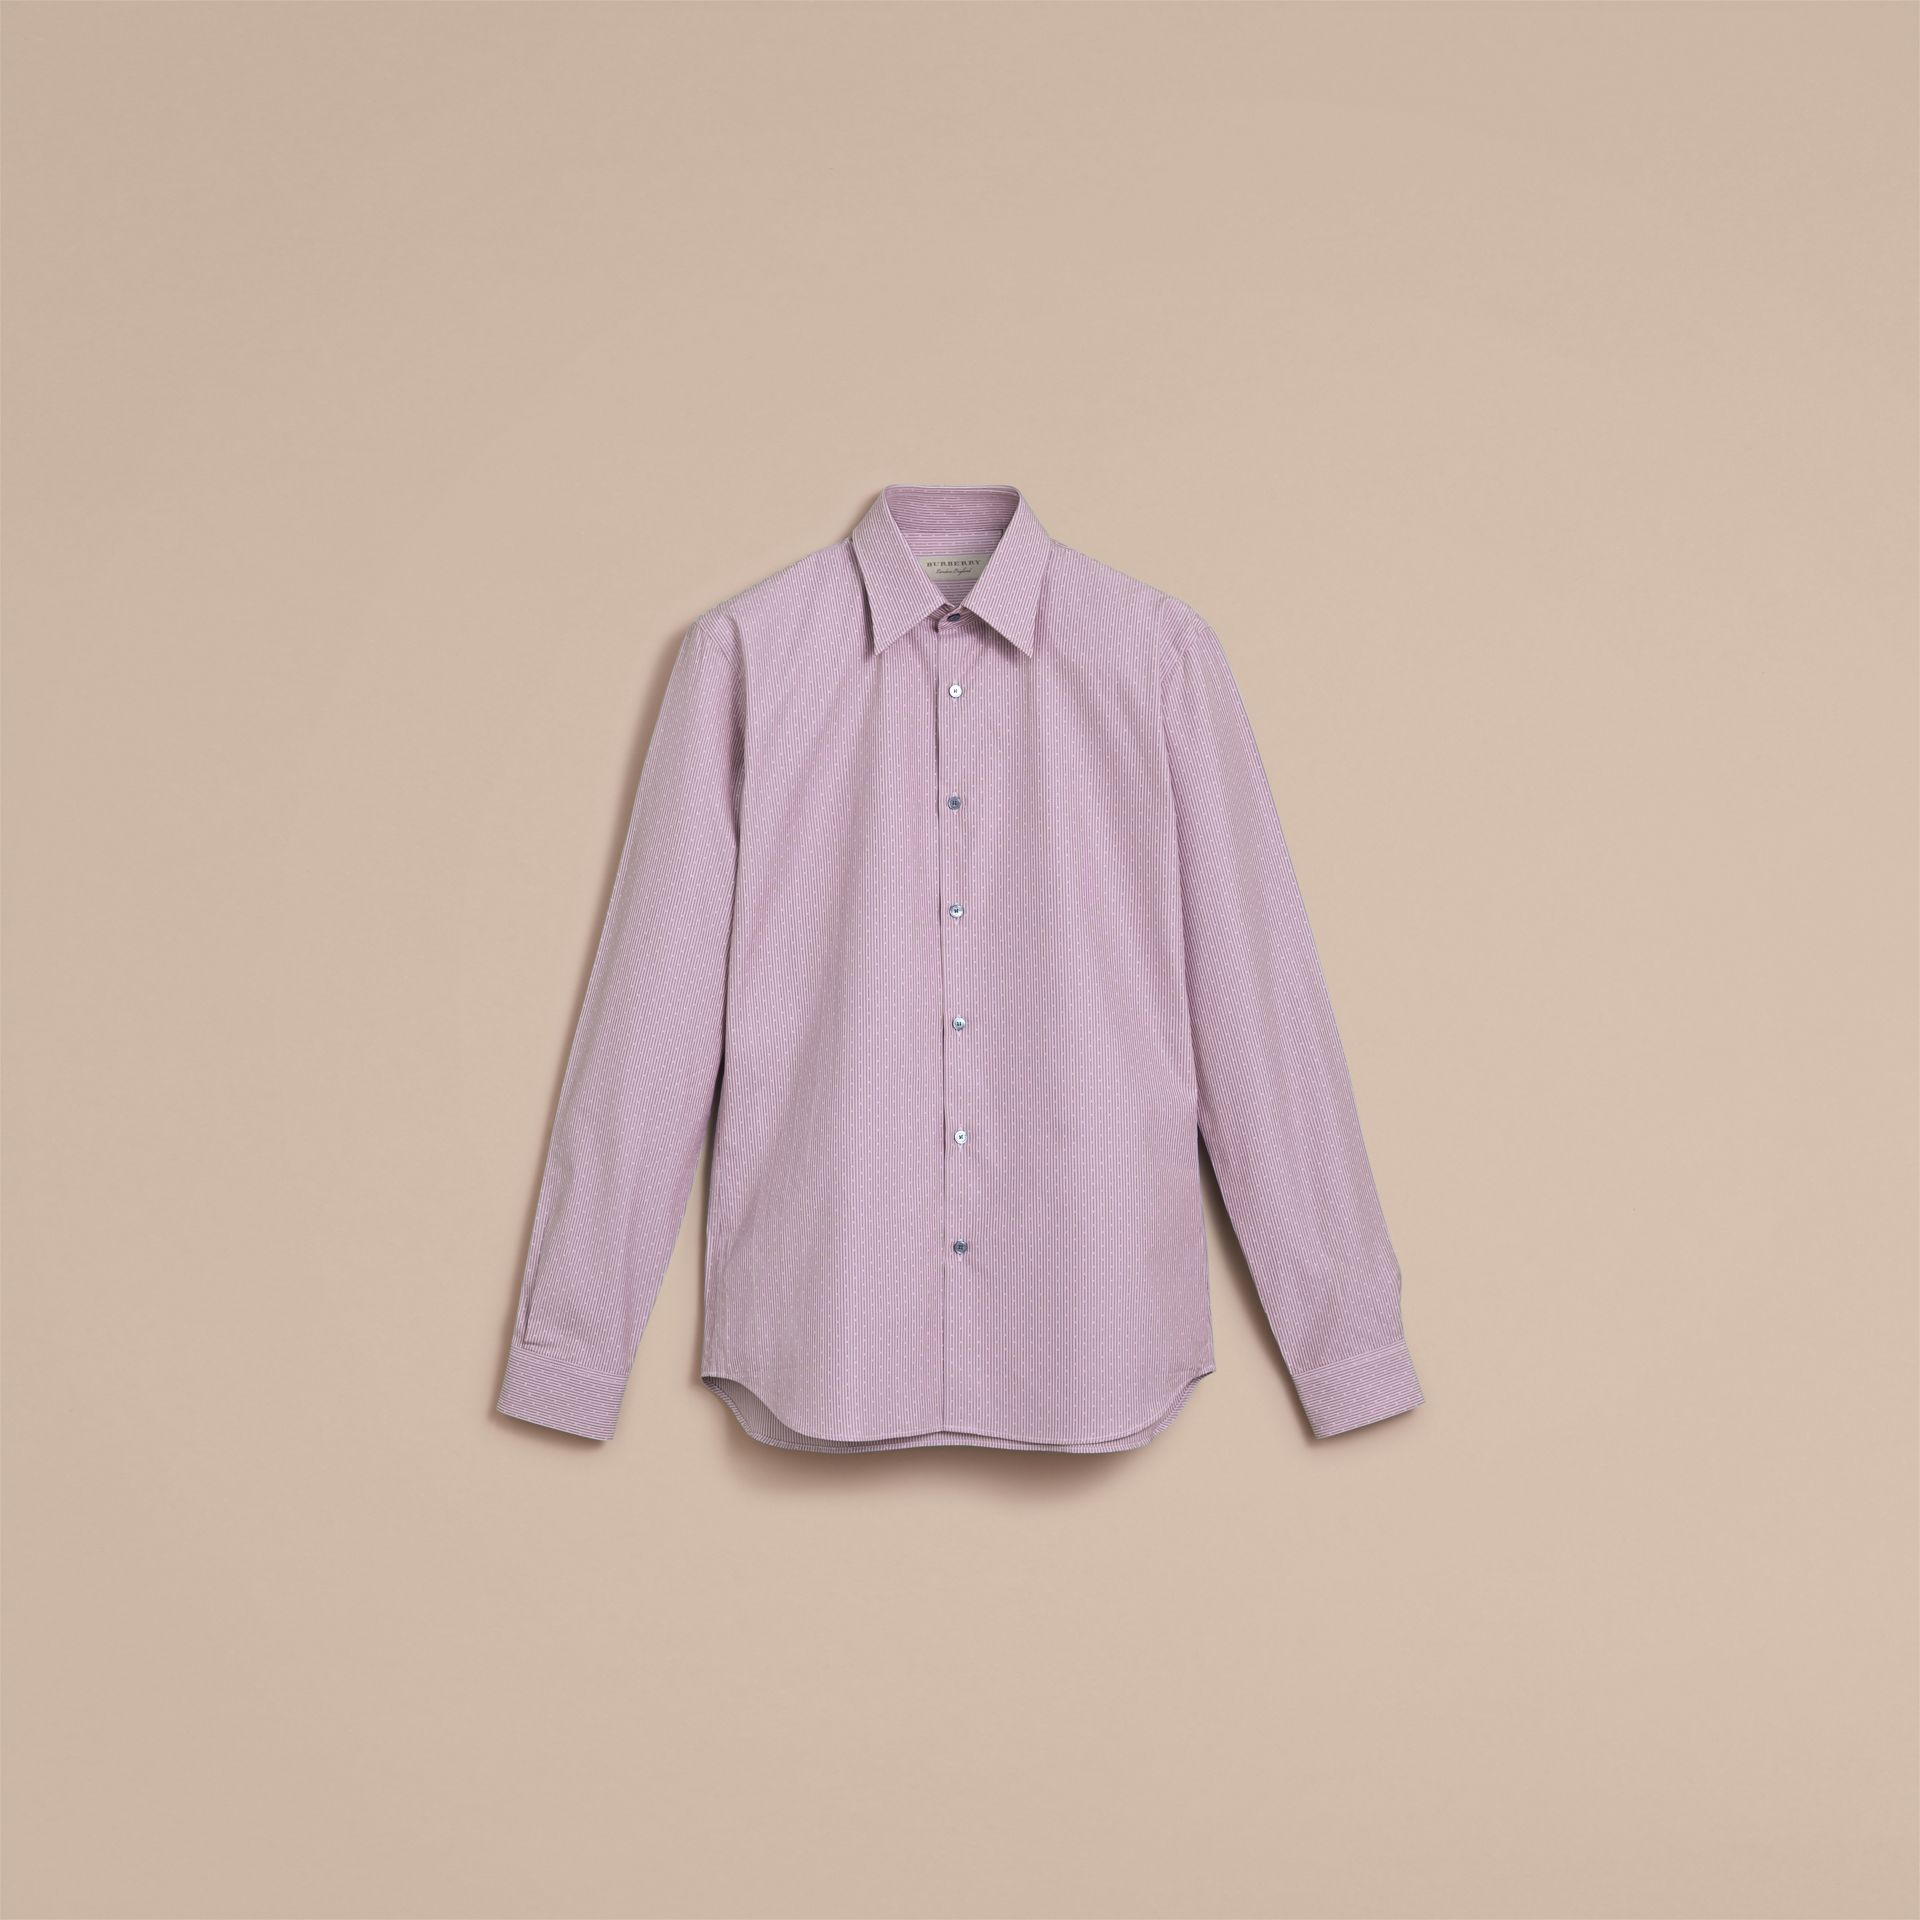 Slim Fit Striped Cross Dobby Cotton Shirt in Heather - Men | Burberry Singapore - gallery image 4